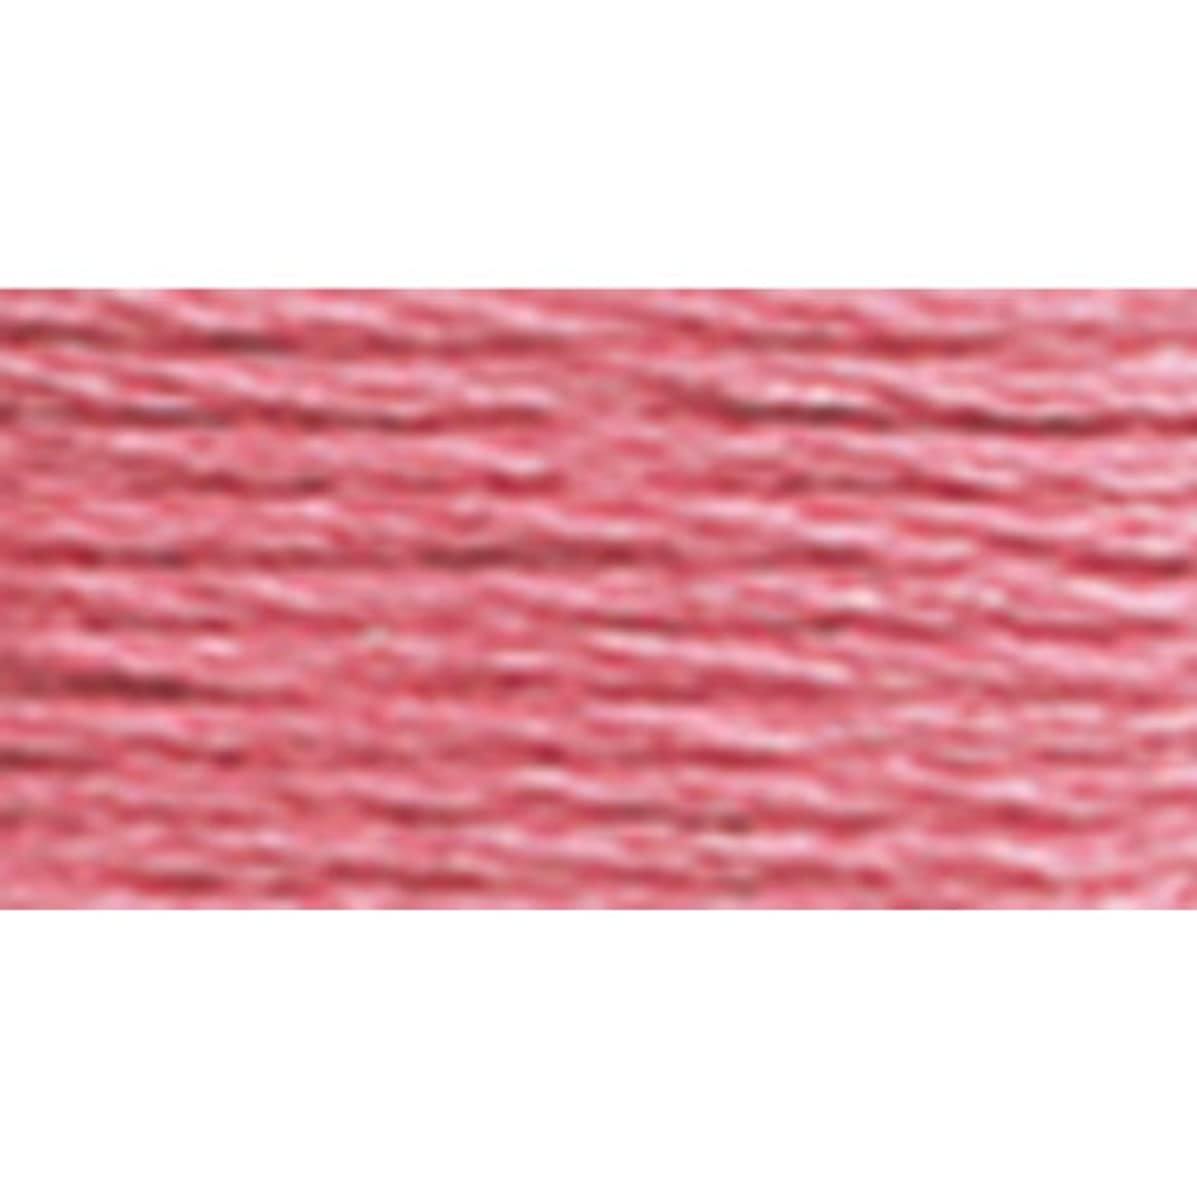 DMC 117-962 6 Strand Embroidery Cotton Floss, Medium Dusty Rose, 8.7-Yard